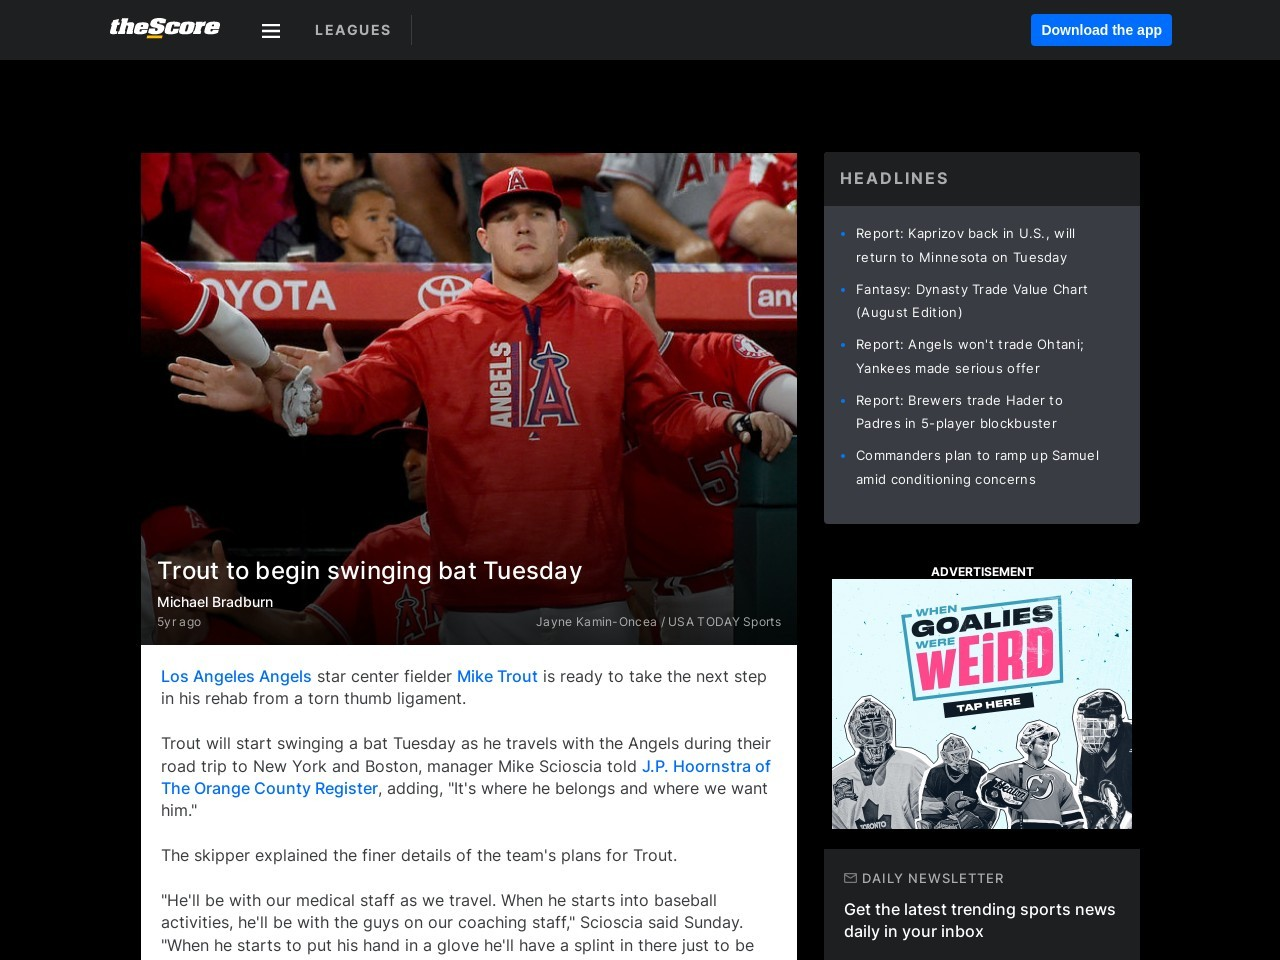 Trout to begin swinging bat Tuesday